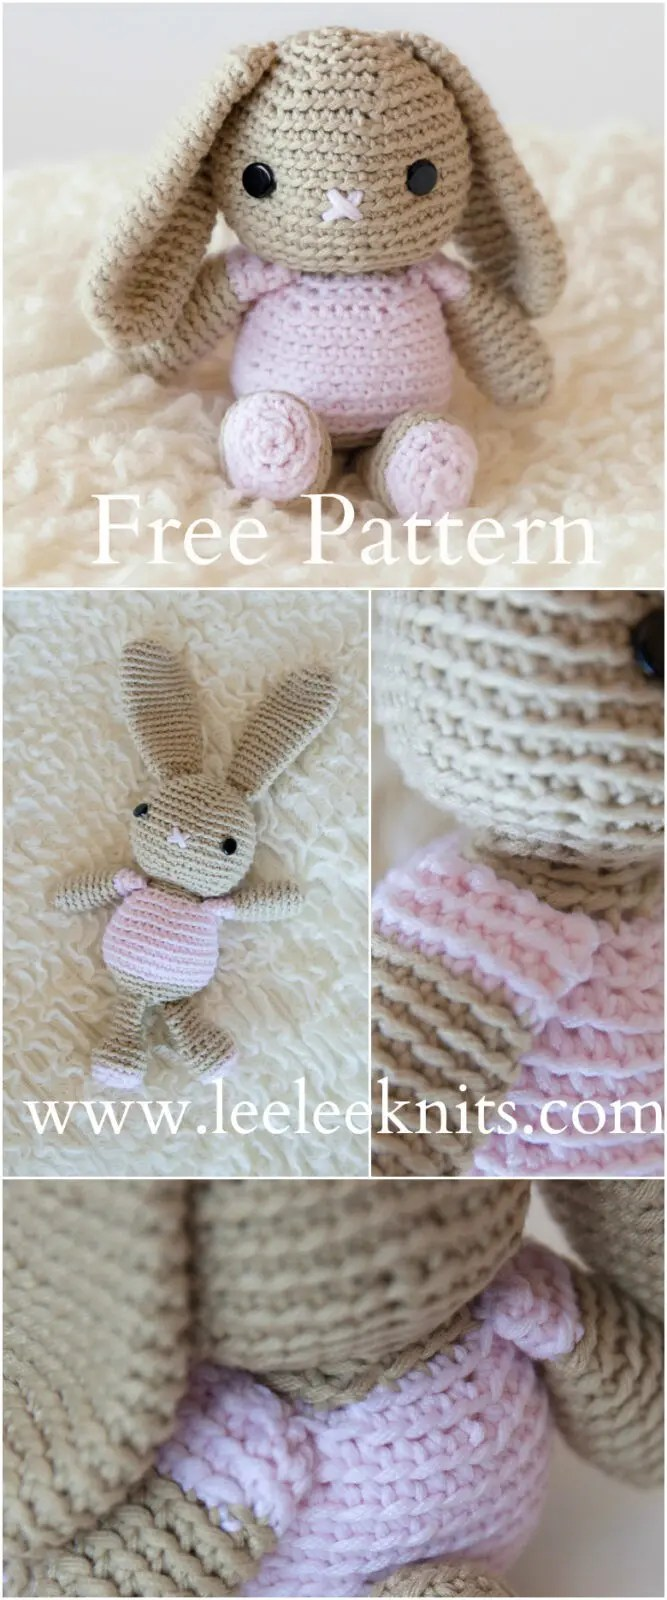 Crochet Patterns Rabbit : ... Knits ? Blog Archive Free Crochet Bunny Pattern! - Leelee Knits